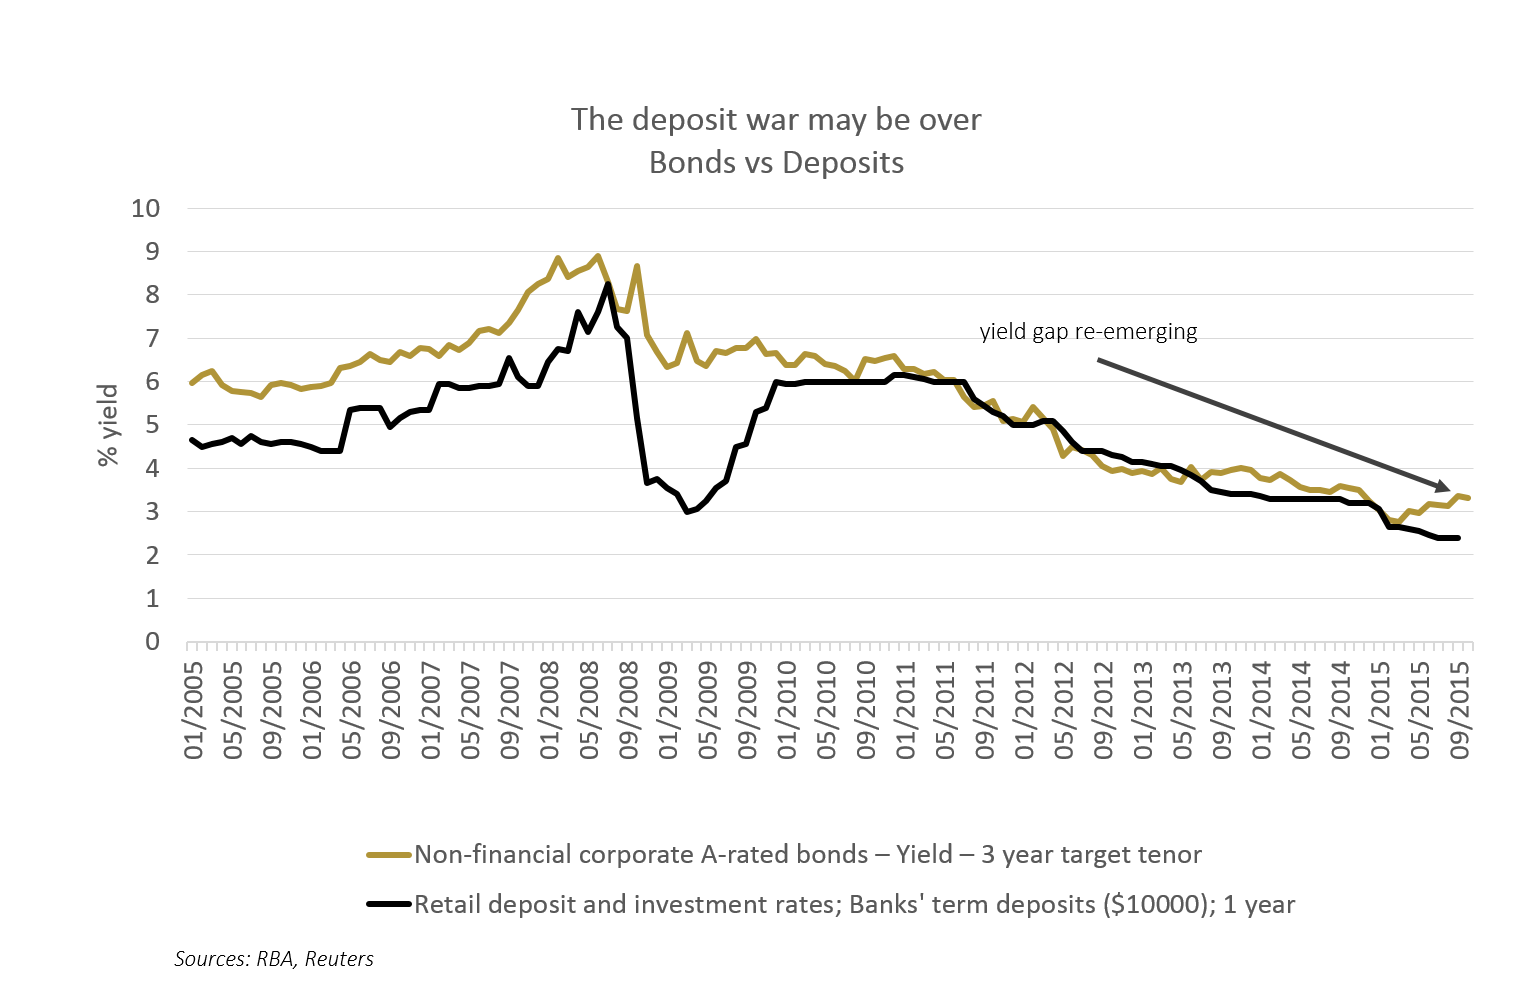 Chart 1: The deposit war may be over